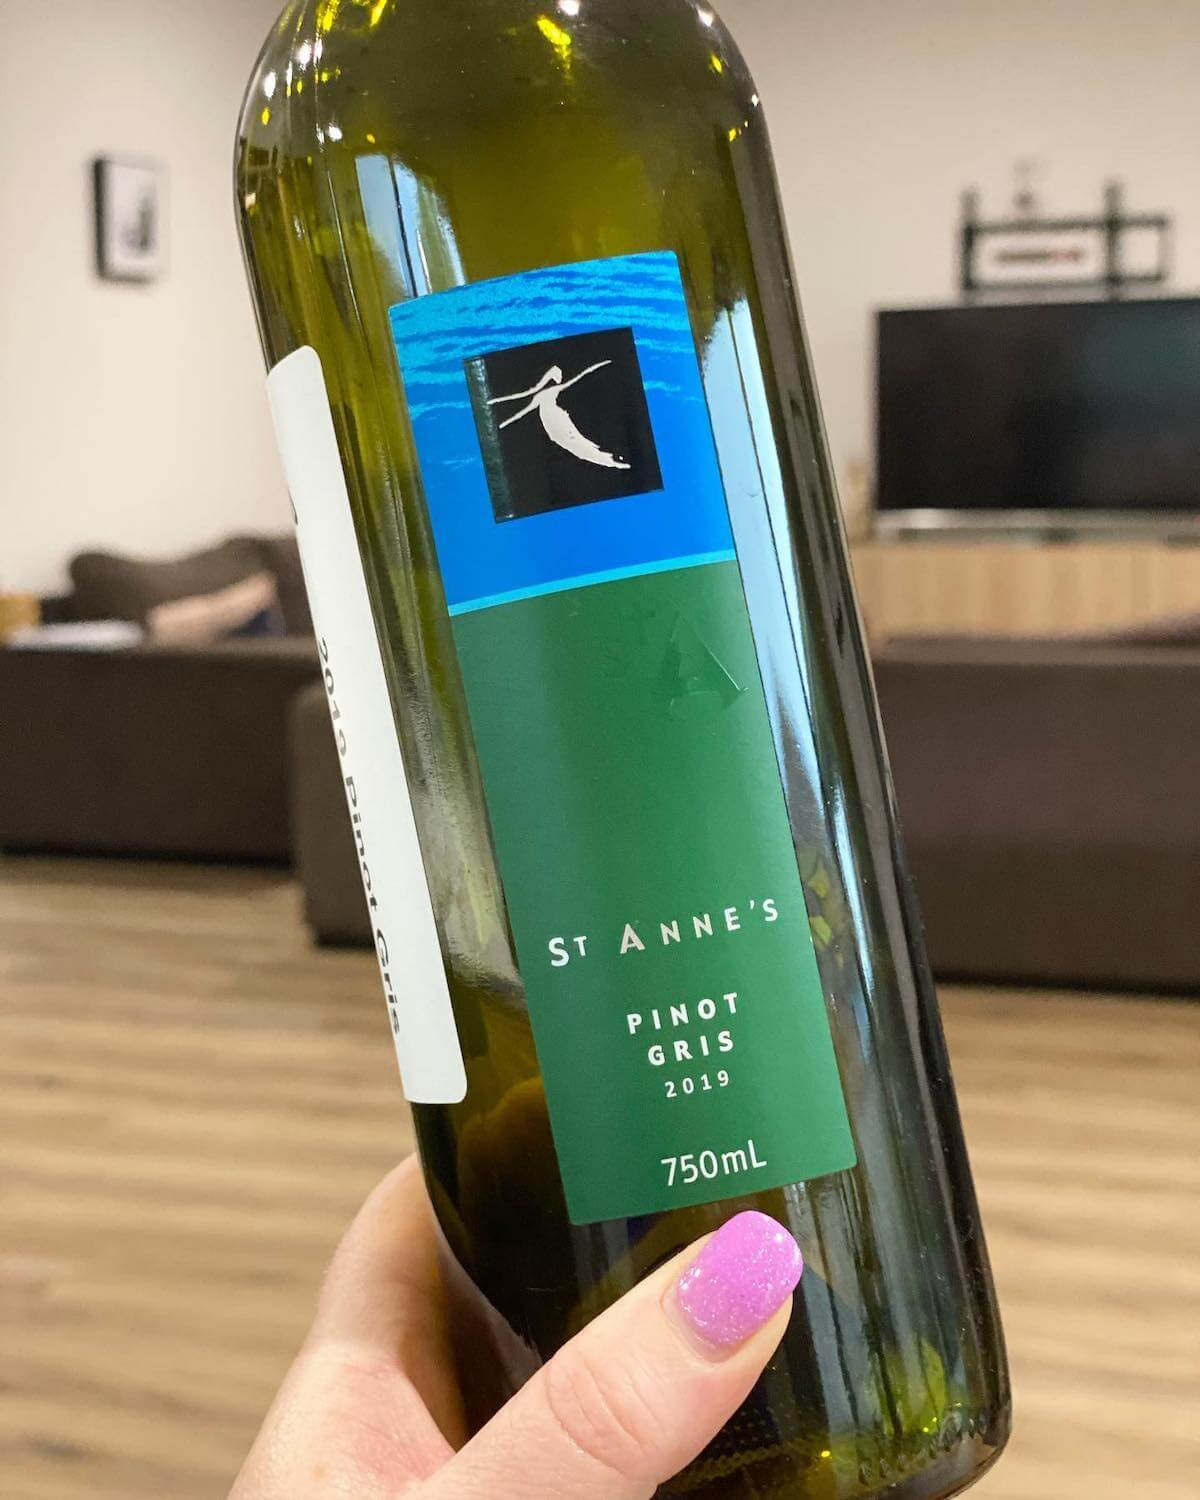 St Anne's Winery 2019 Pinot Gris